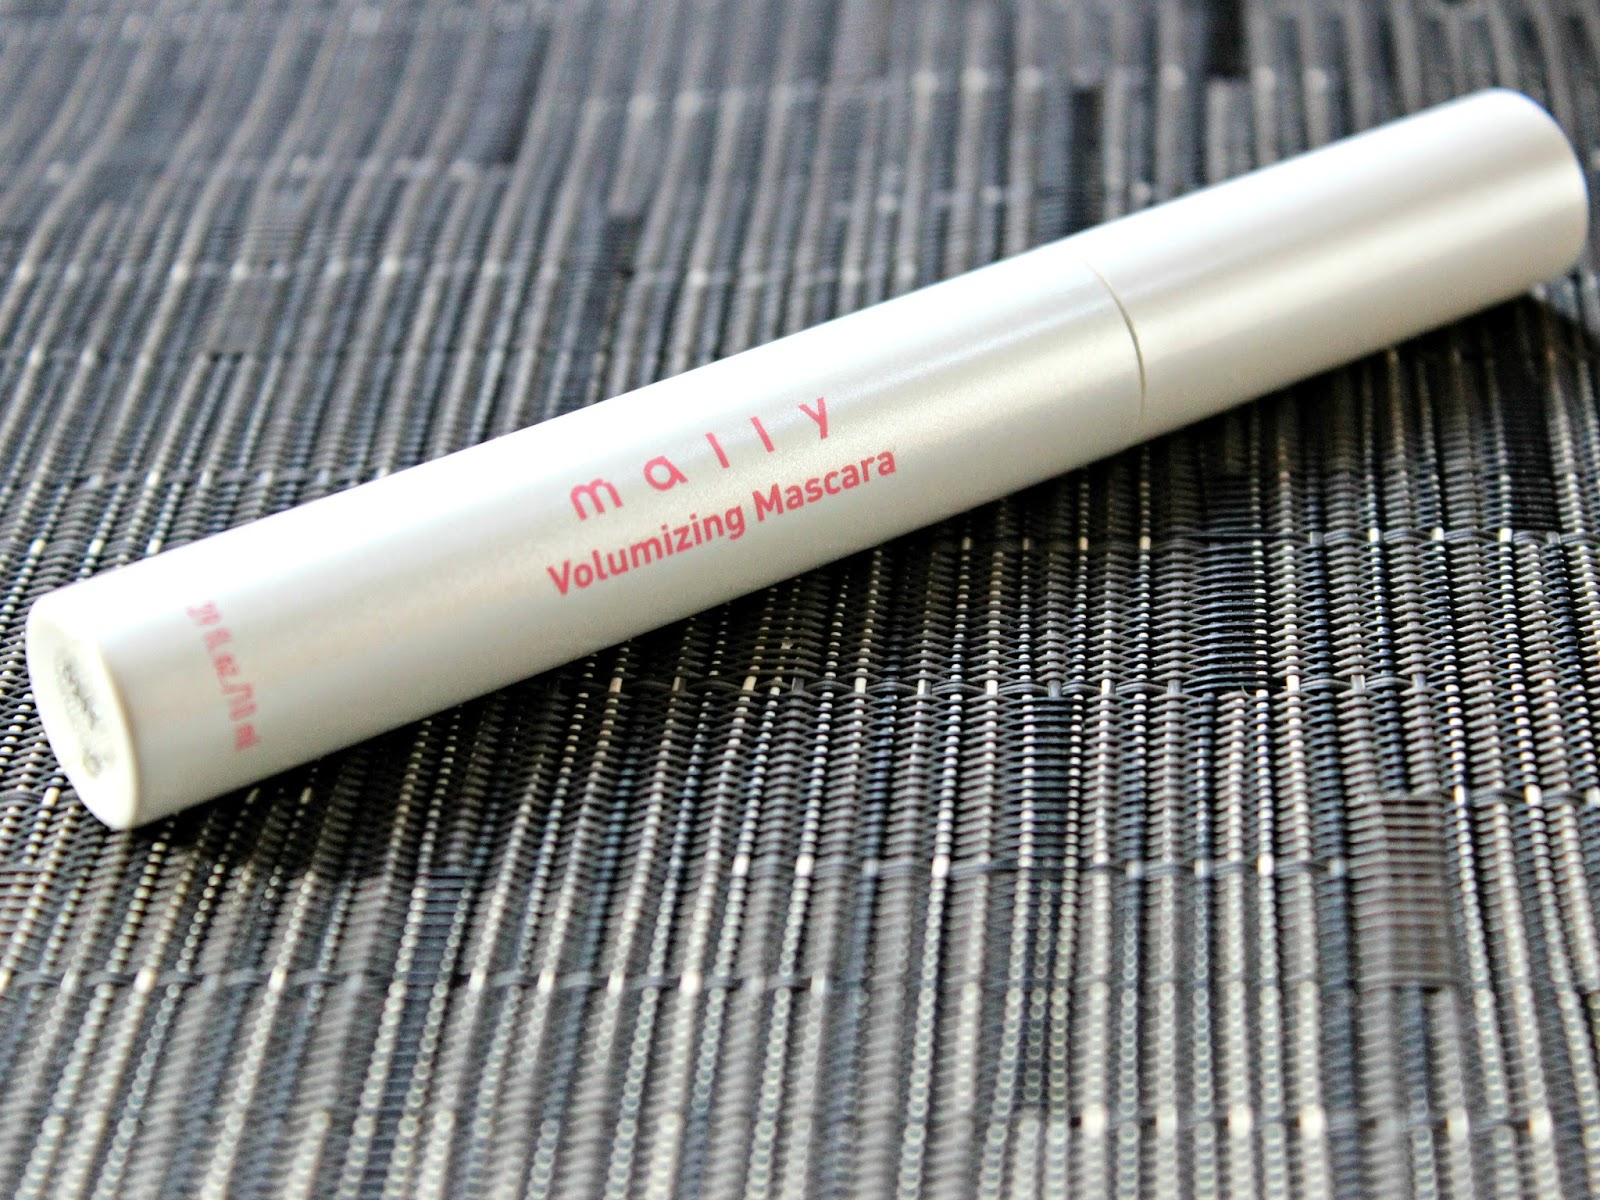 A picture of the Mally Volumizing Mascara